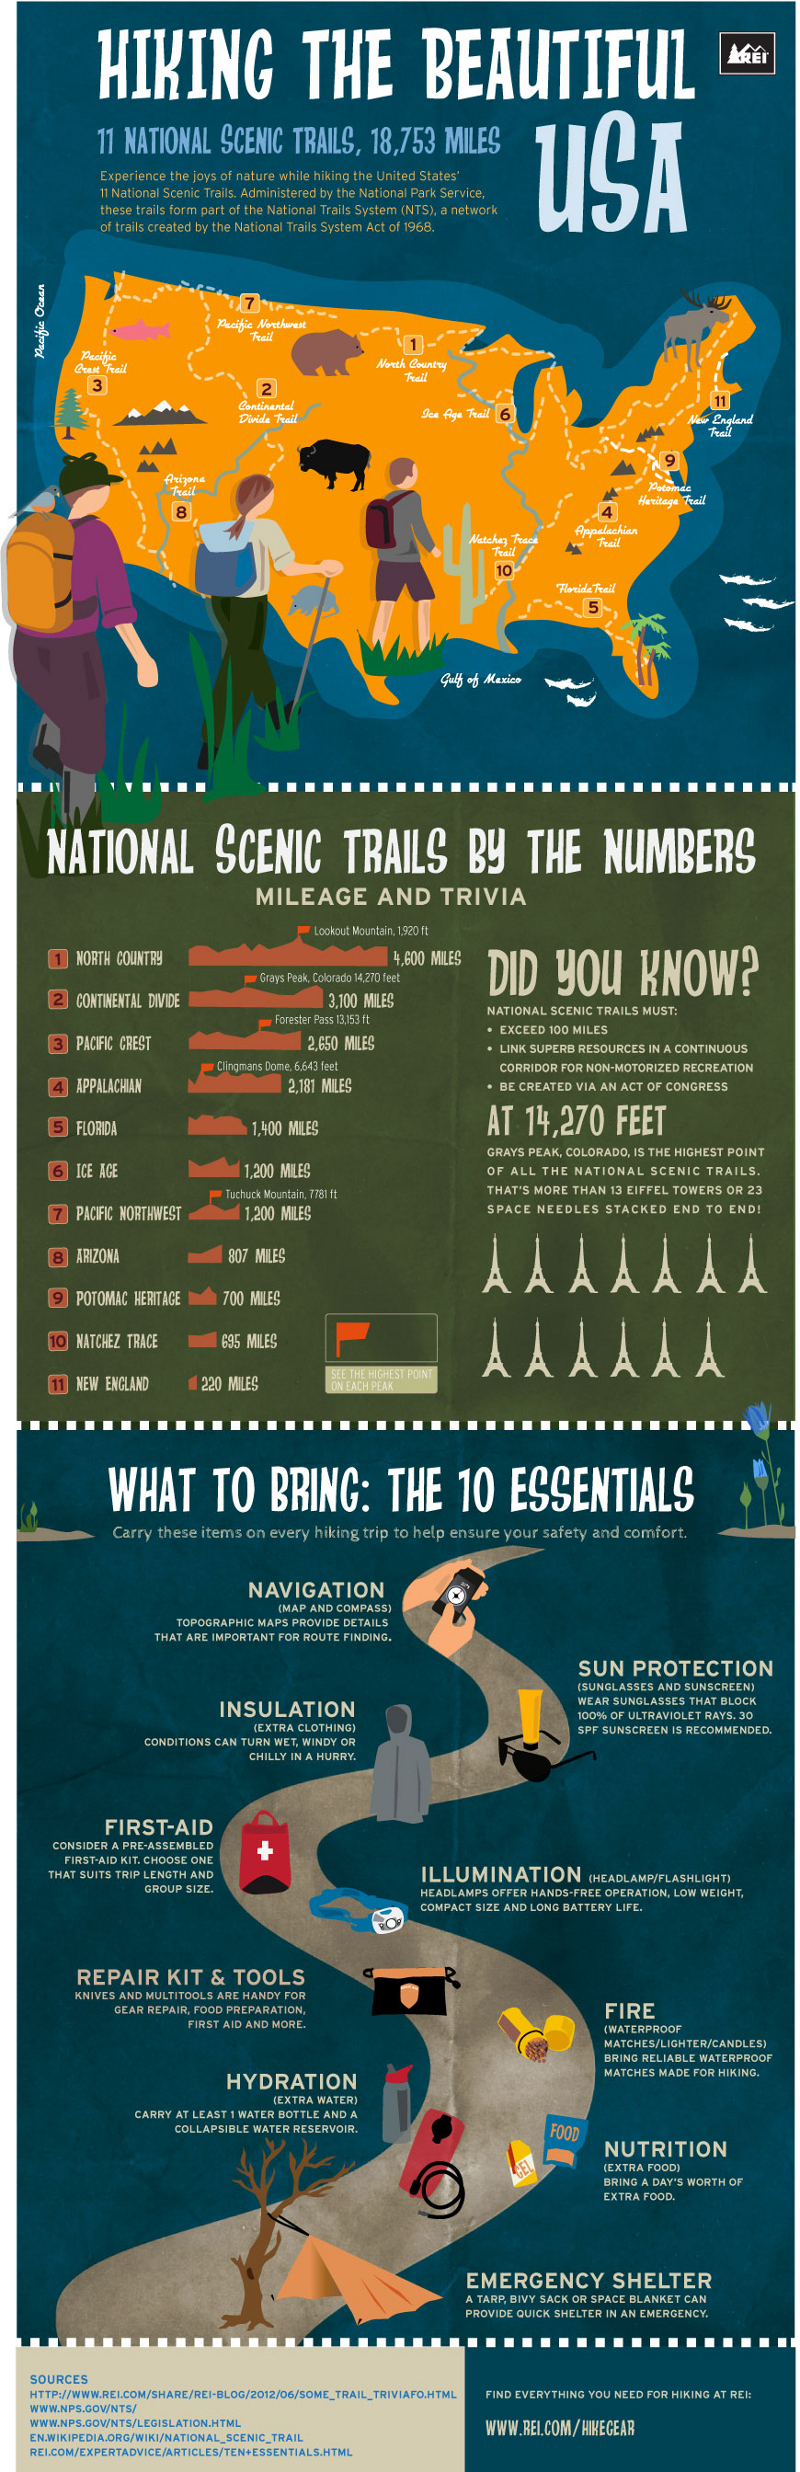 Best Hiking Trails in the US